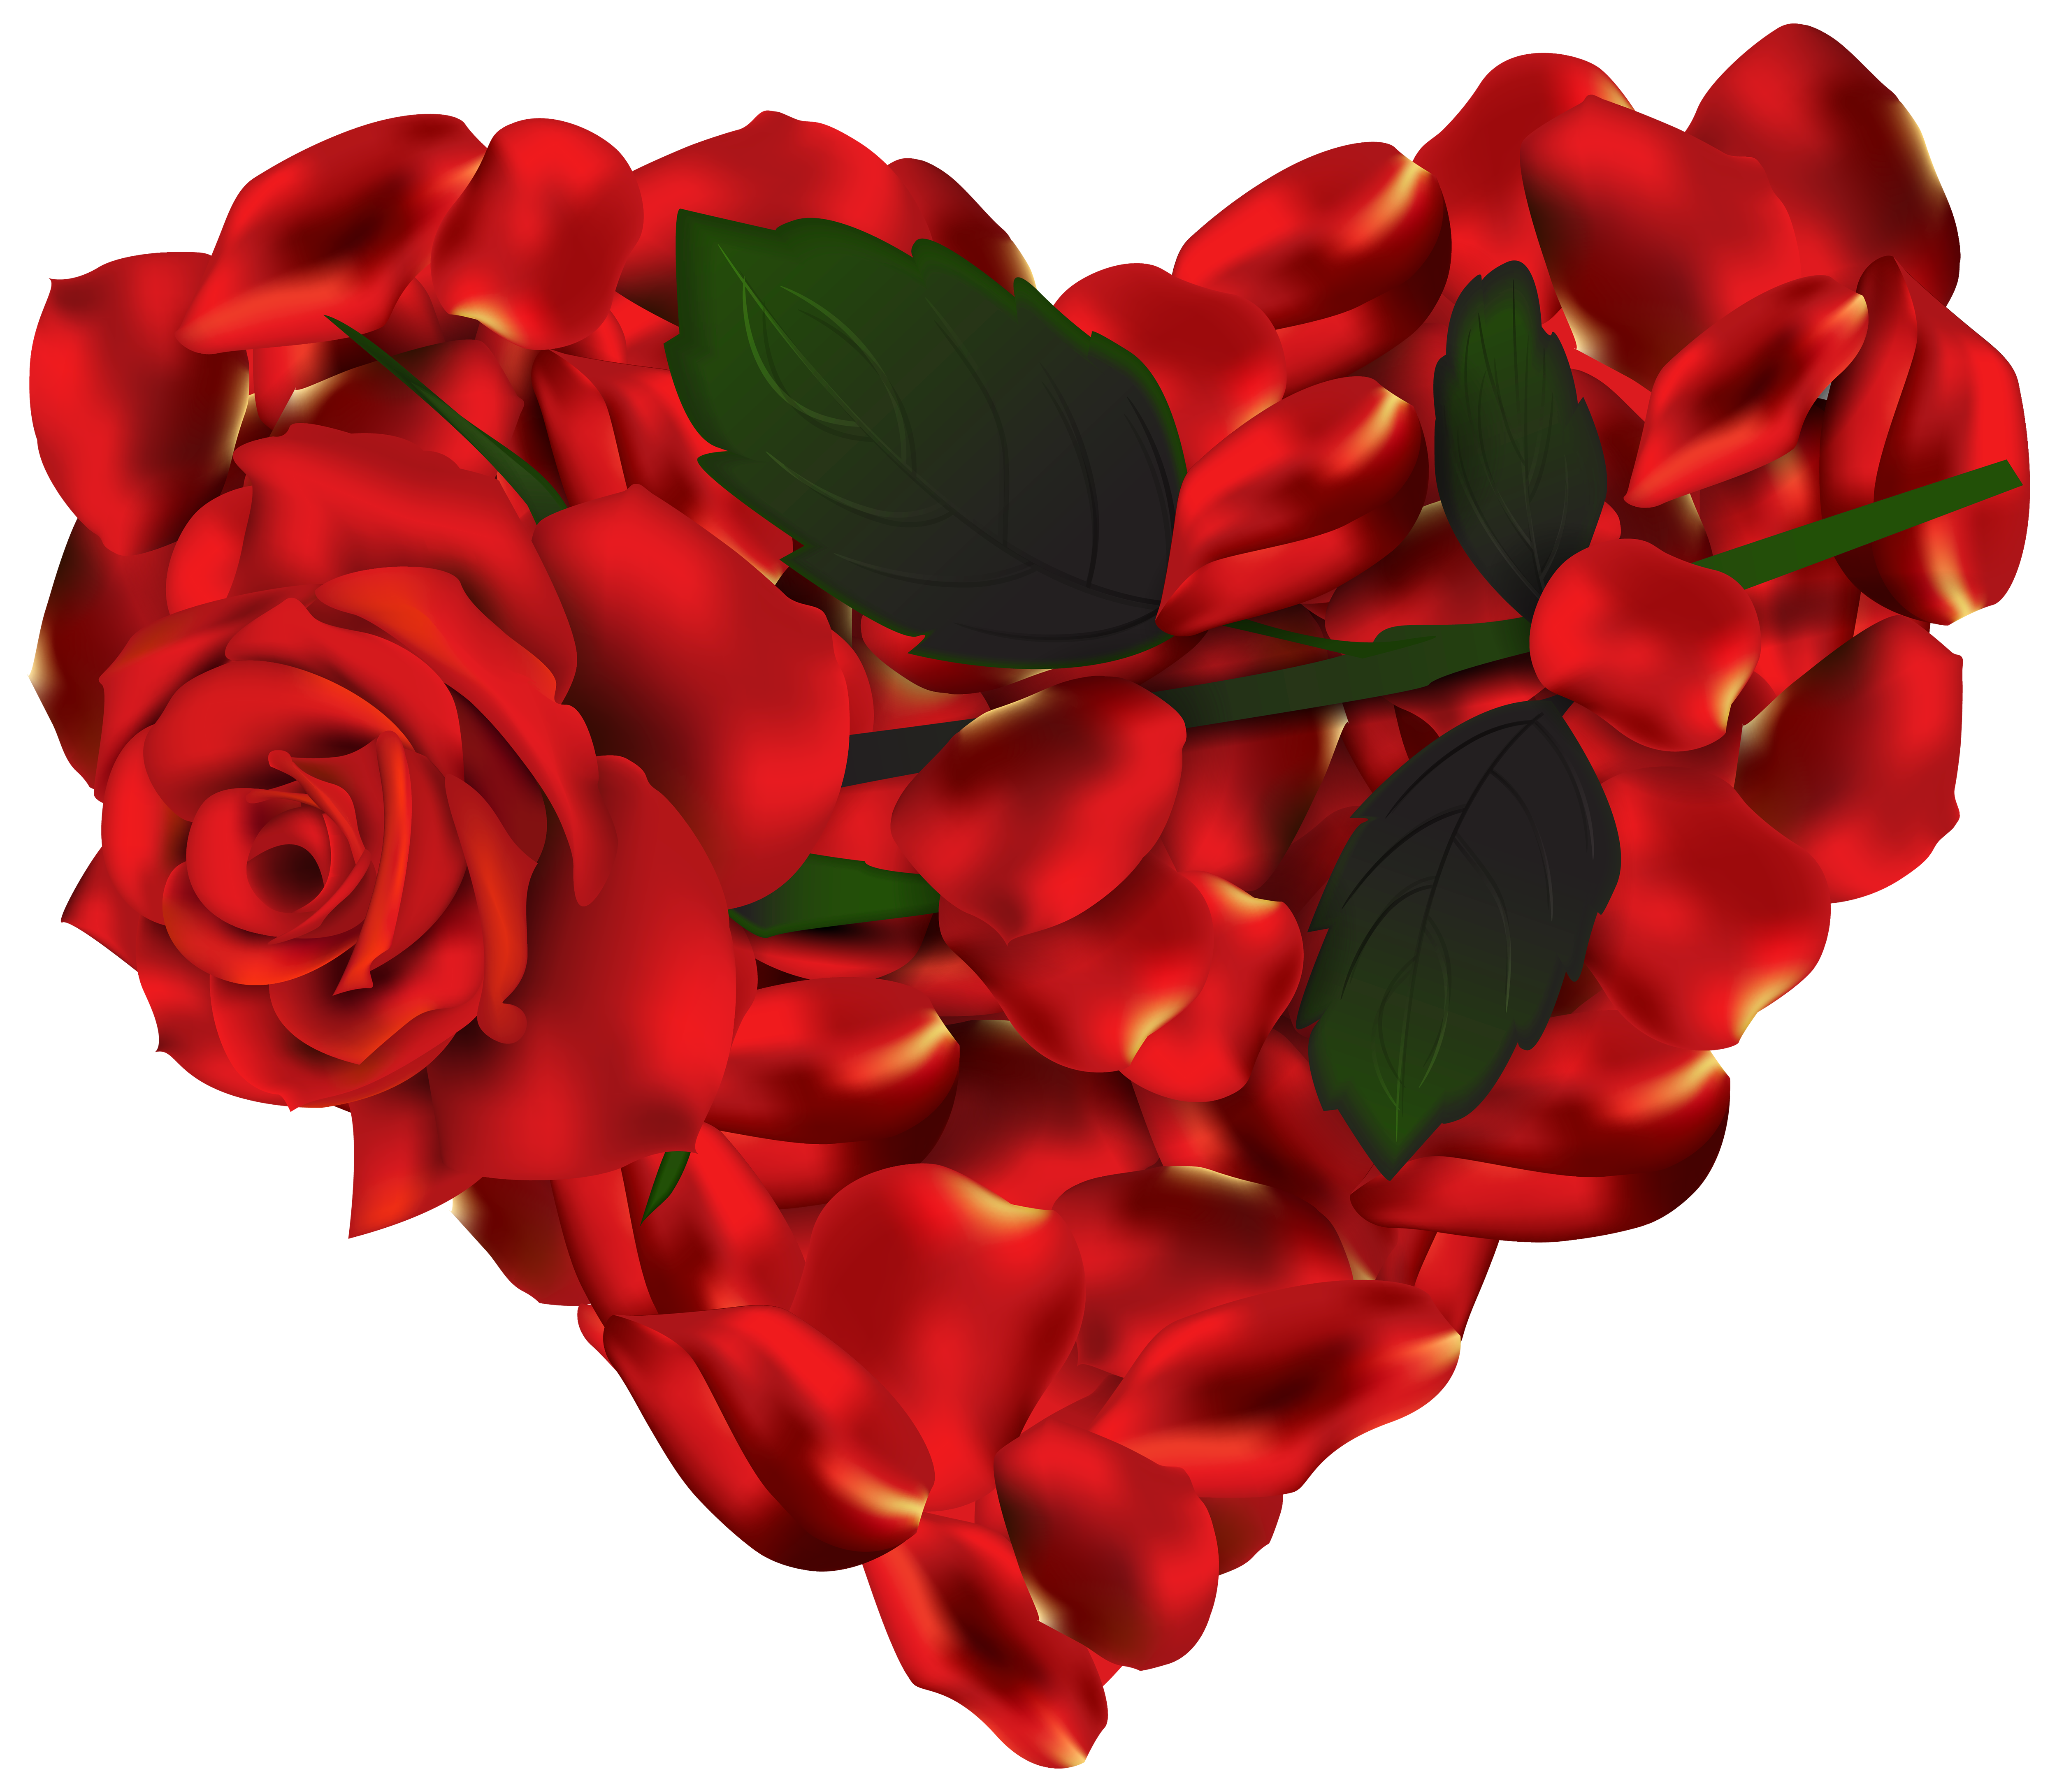 Heart of roses png. Clipart hearts plant